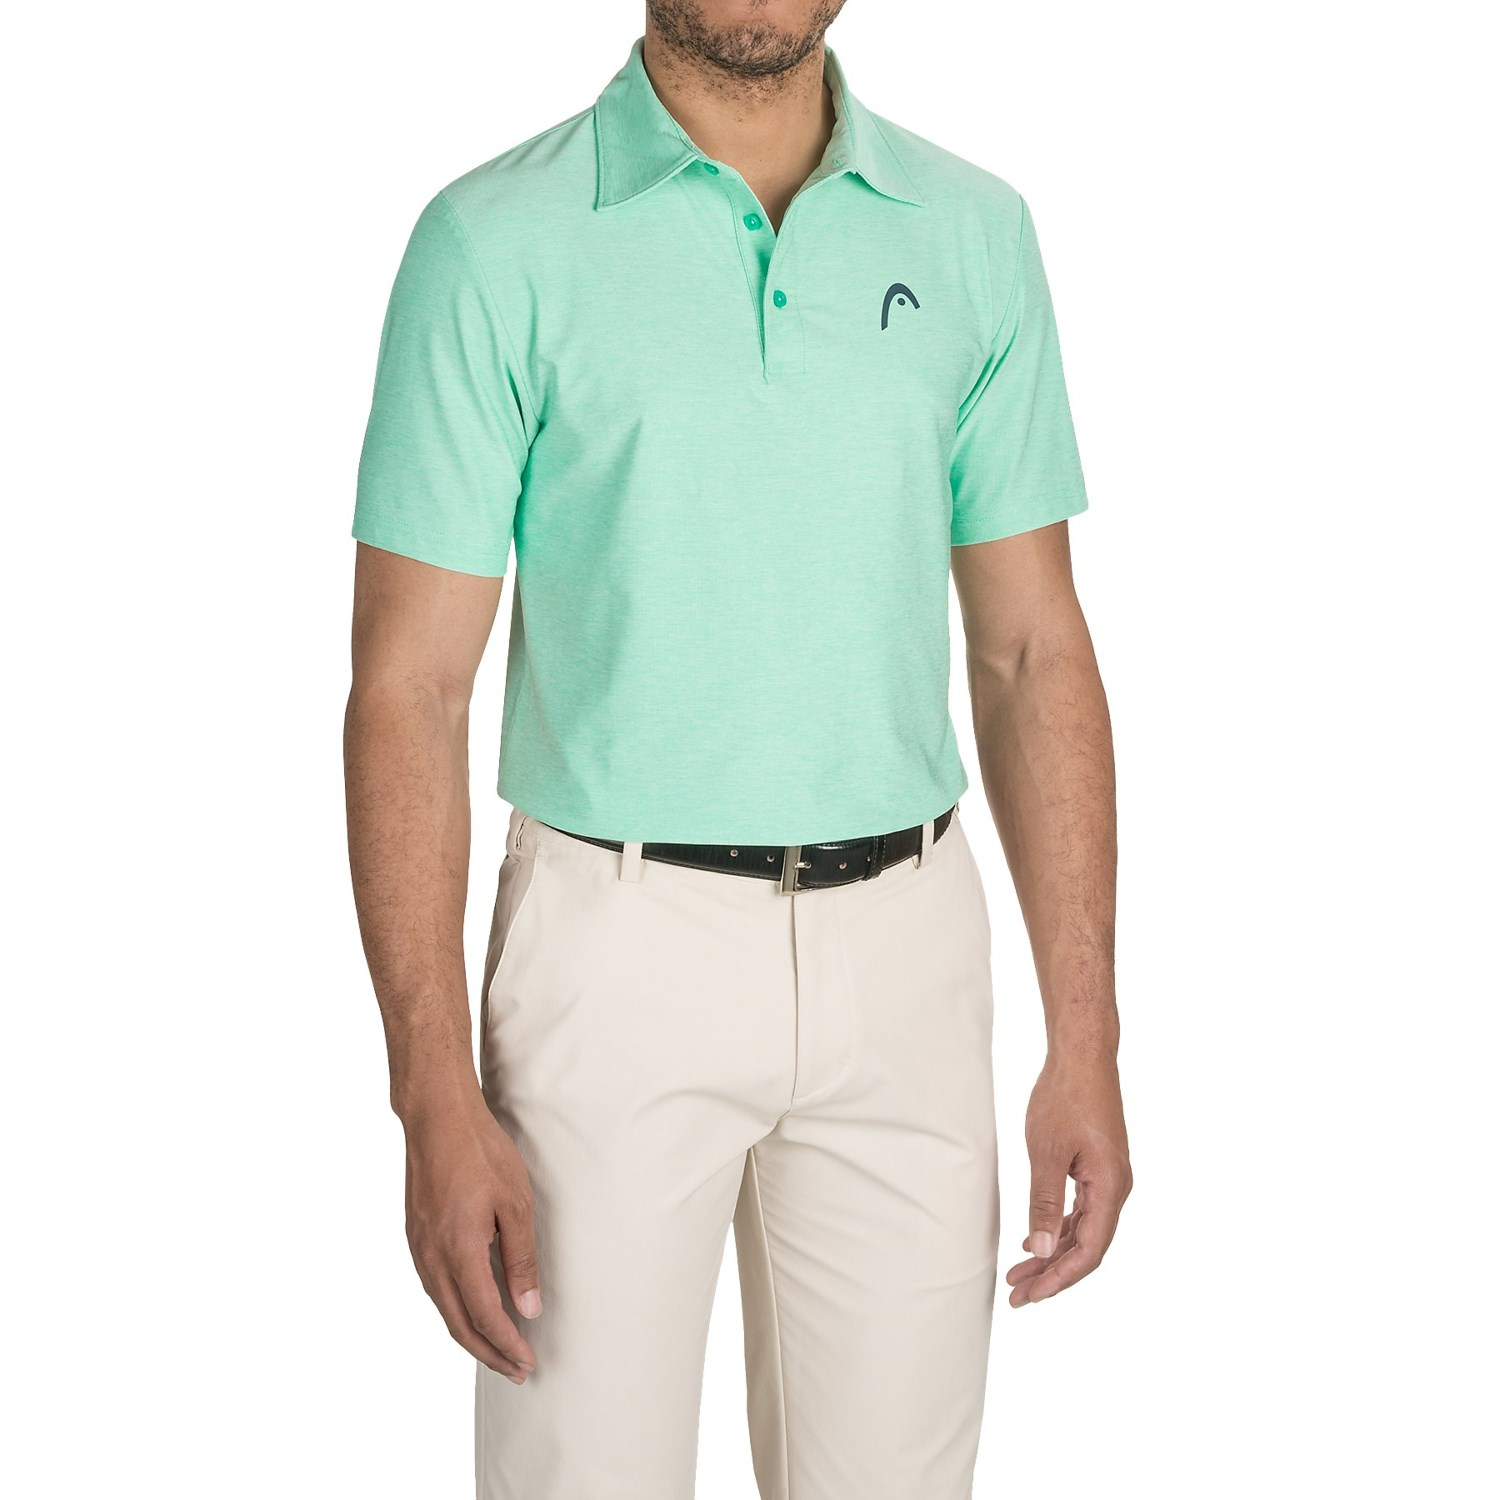 Head protocol dri motion polo shirt for men save 50 for Mint color polo shirt